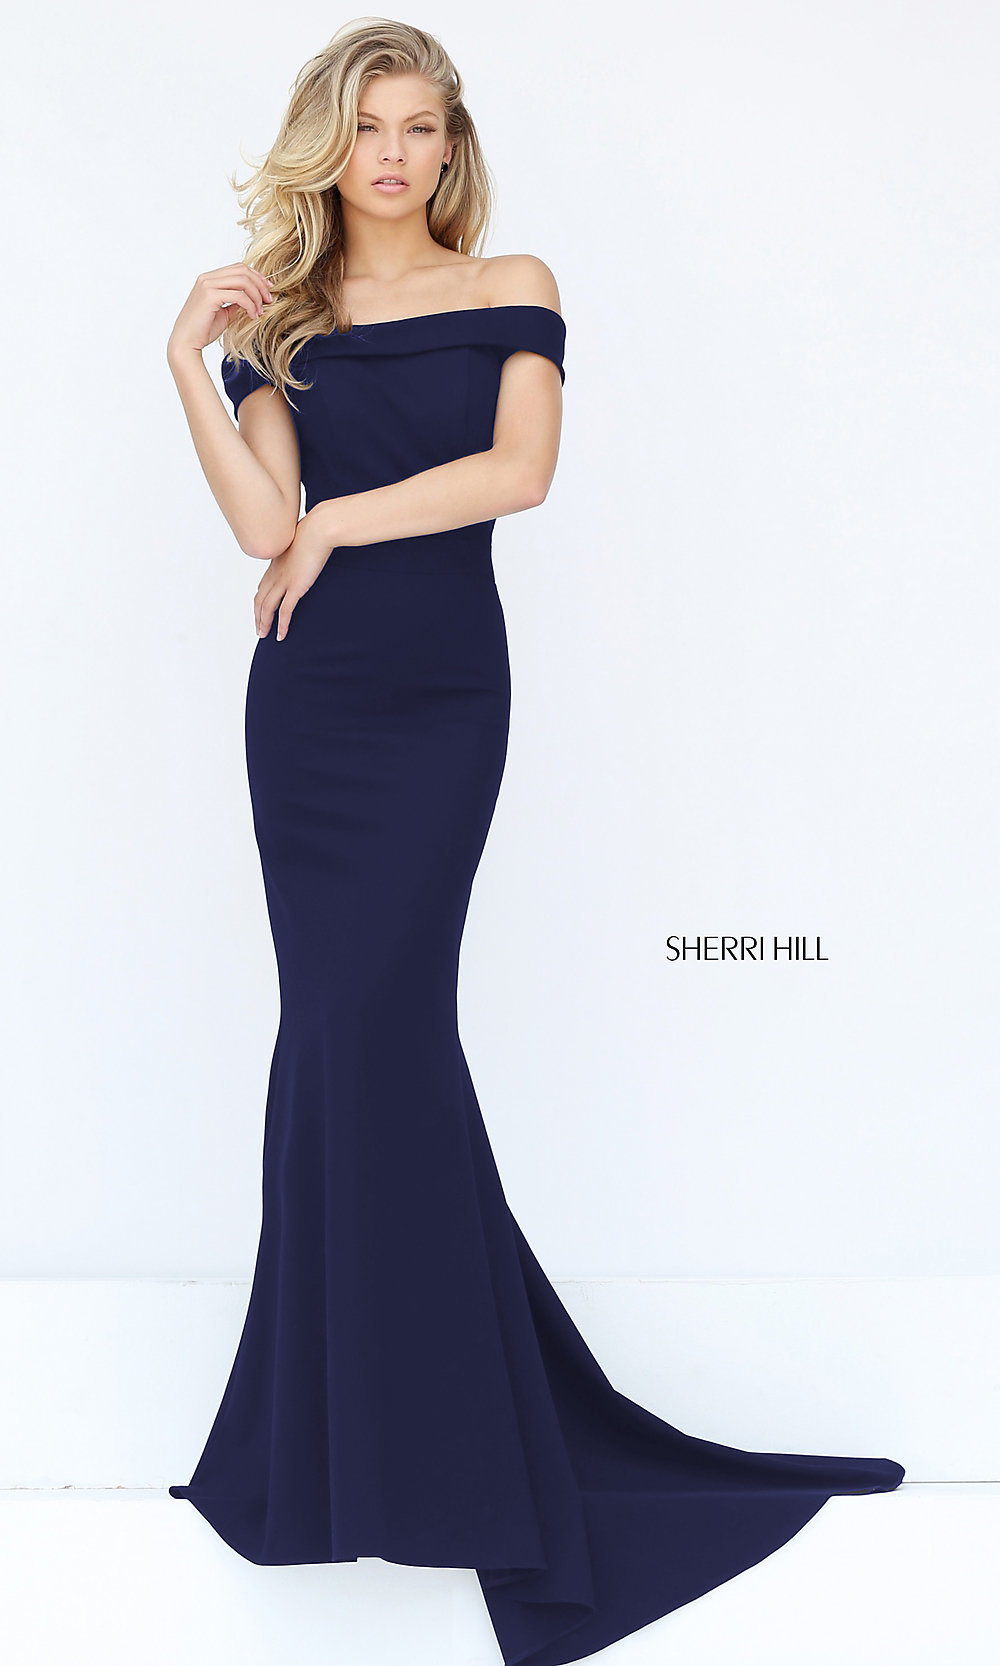 8da382c5 Sleek Evening Gowns, Sexy Prom Dresses - PromGirl